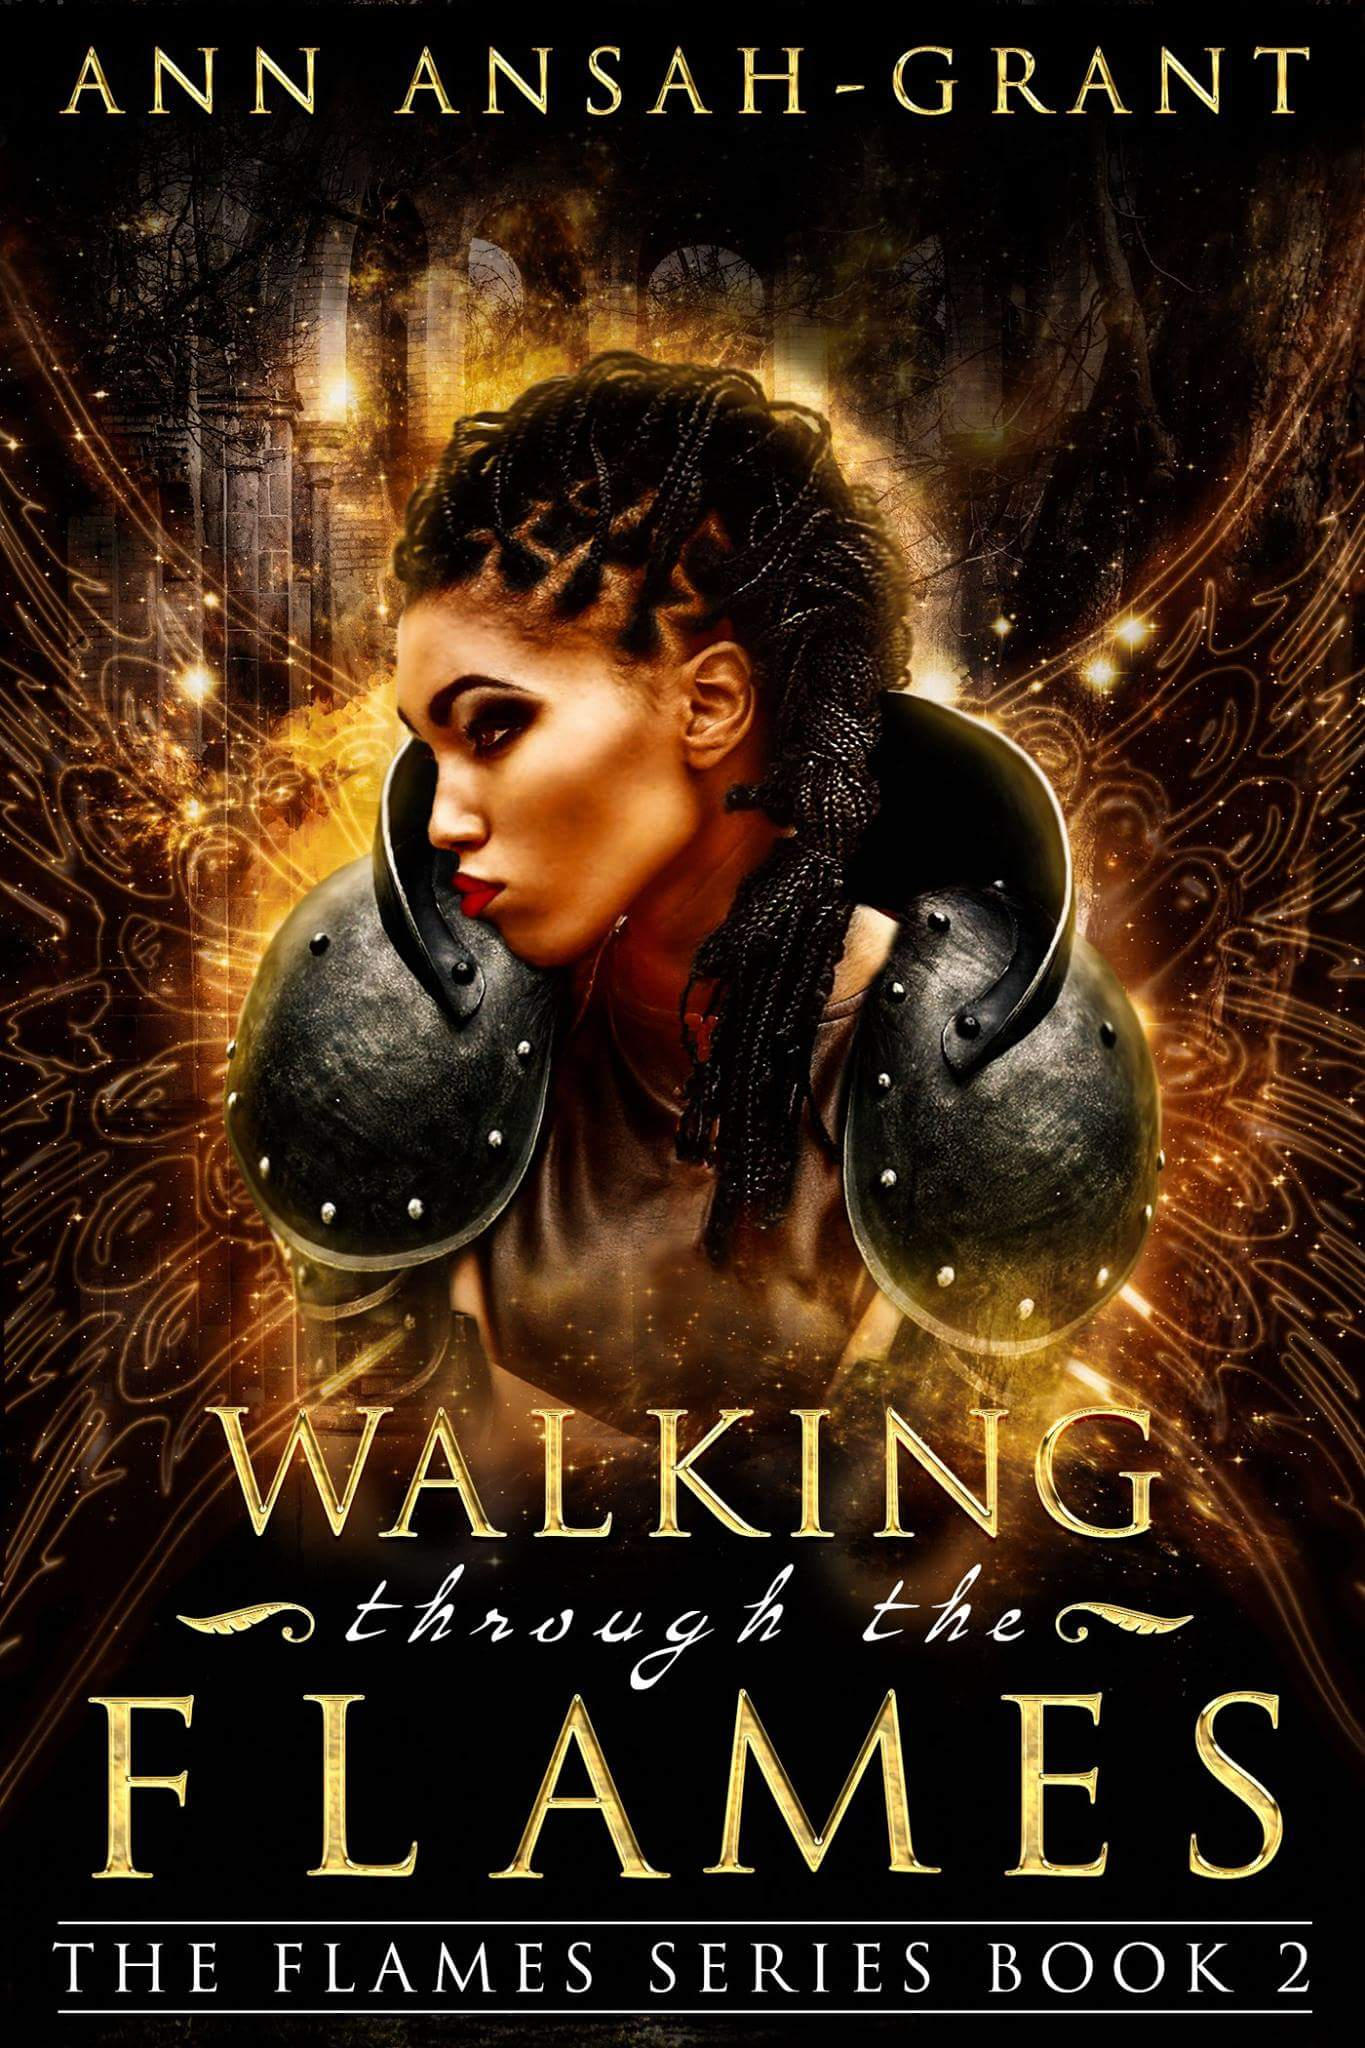 Walking Through the Flames: The Flames Series Book 2